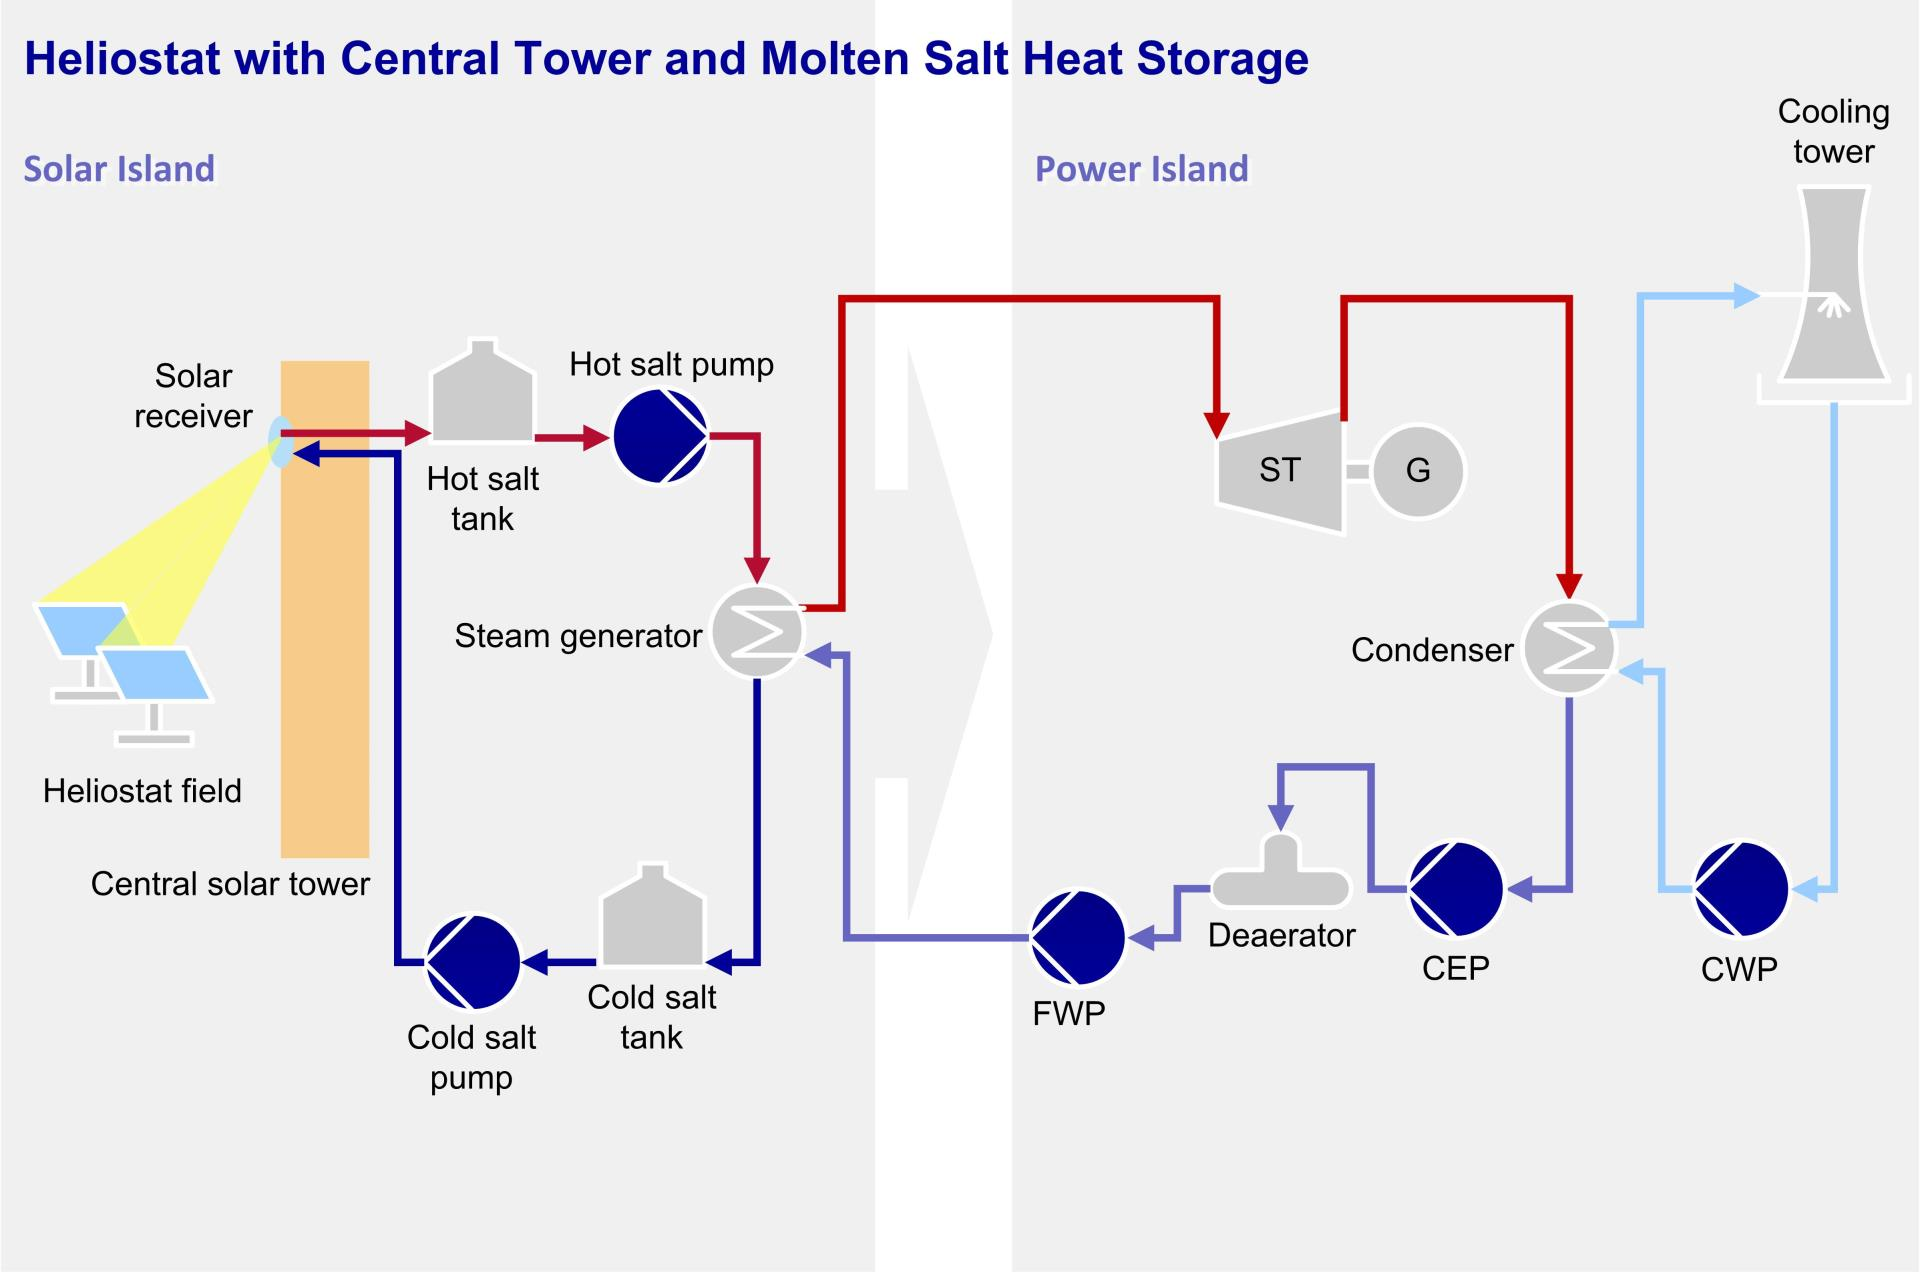 Heliostat with Central Tower and Molten Salt Heat Storage